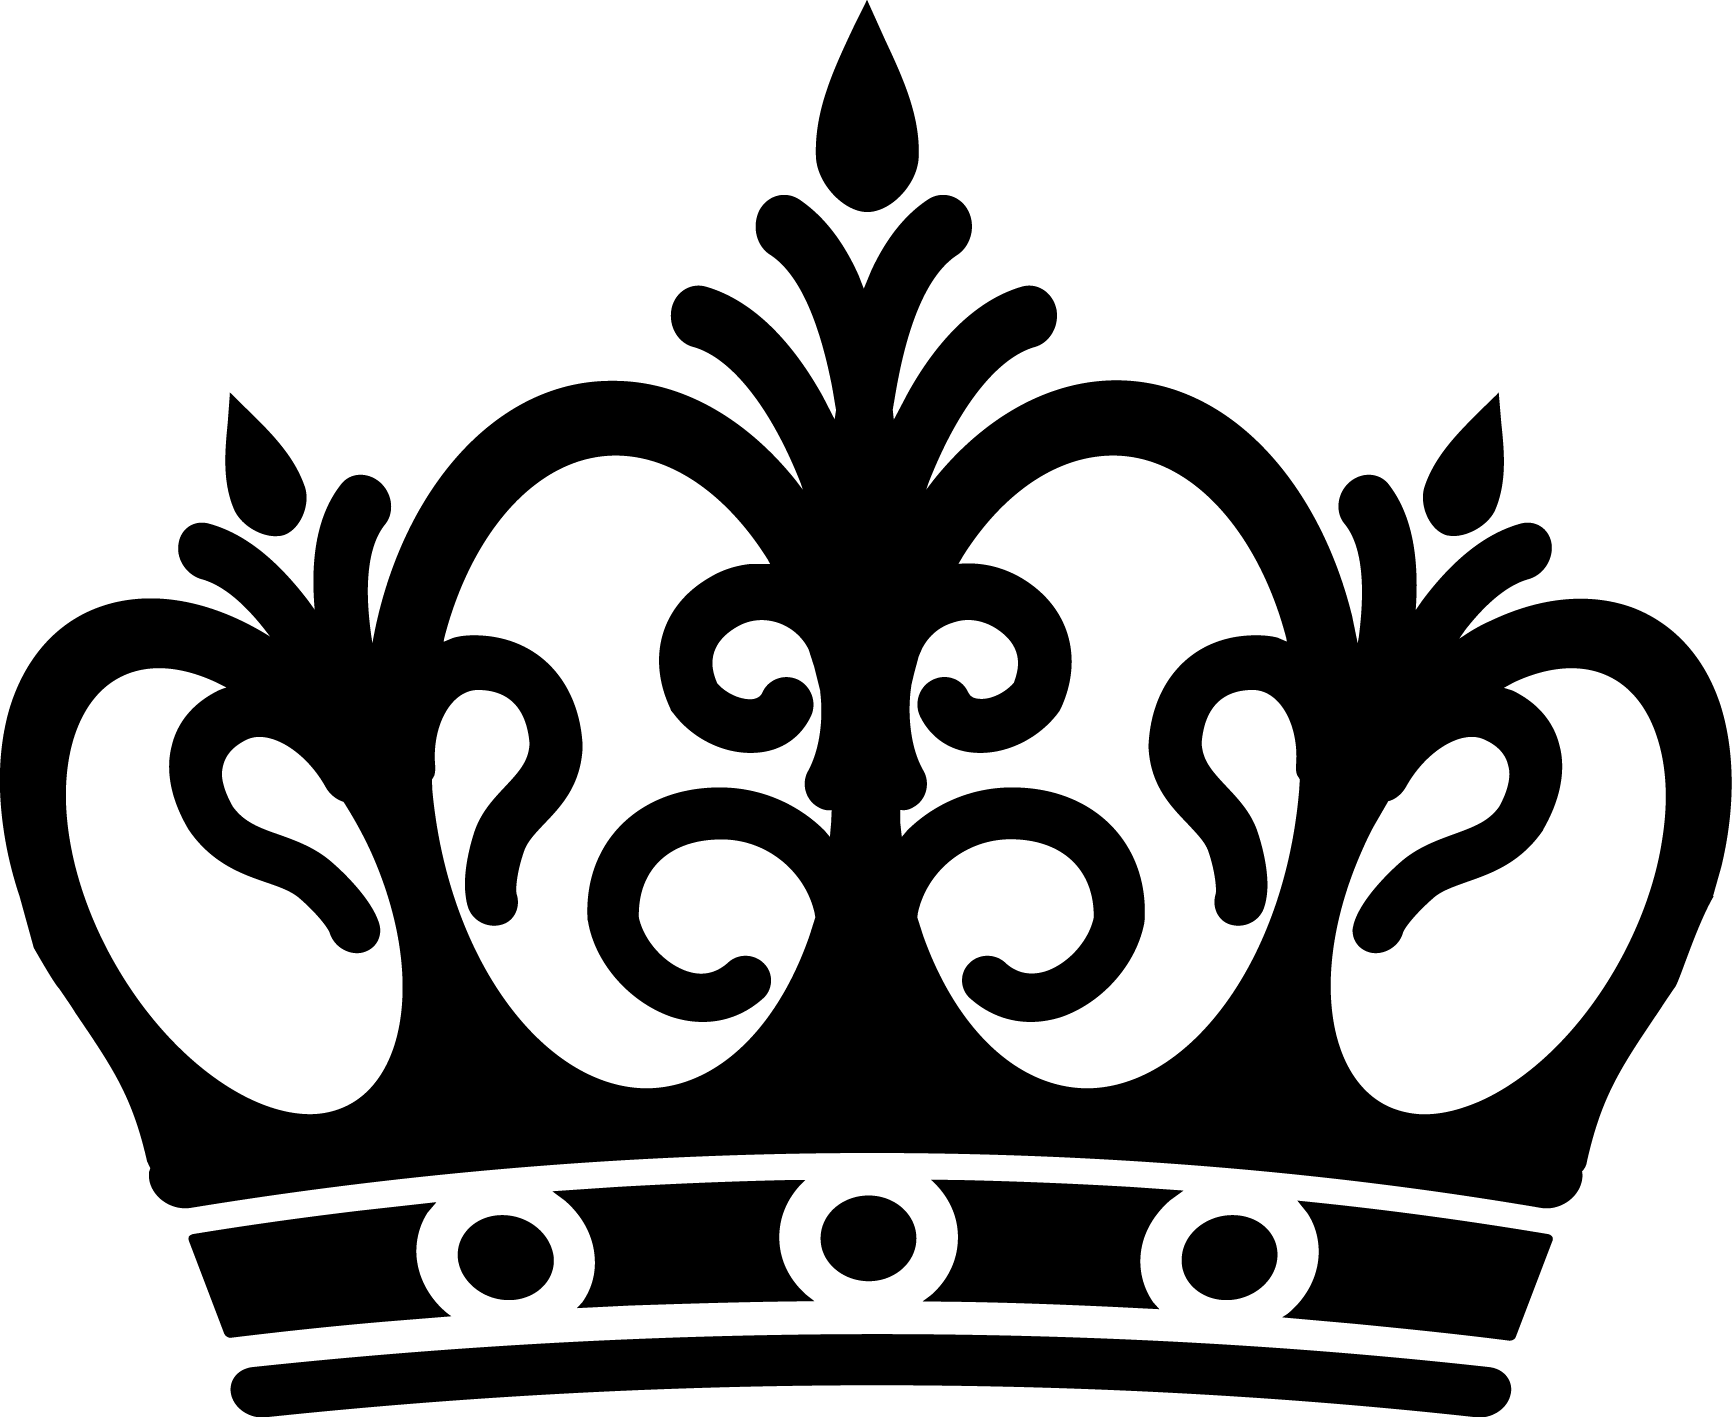 Crowns kingcrown